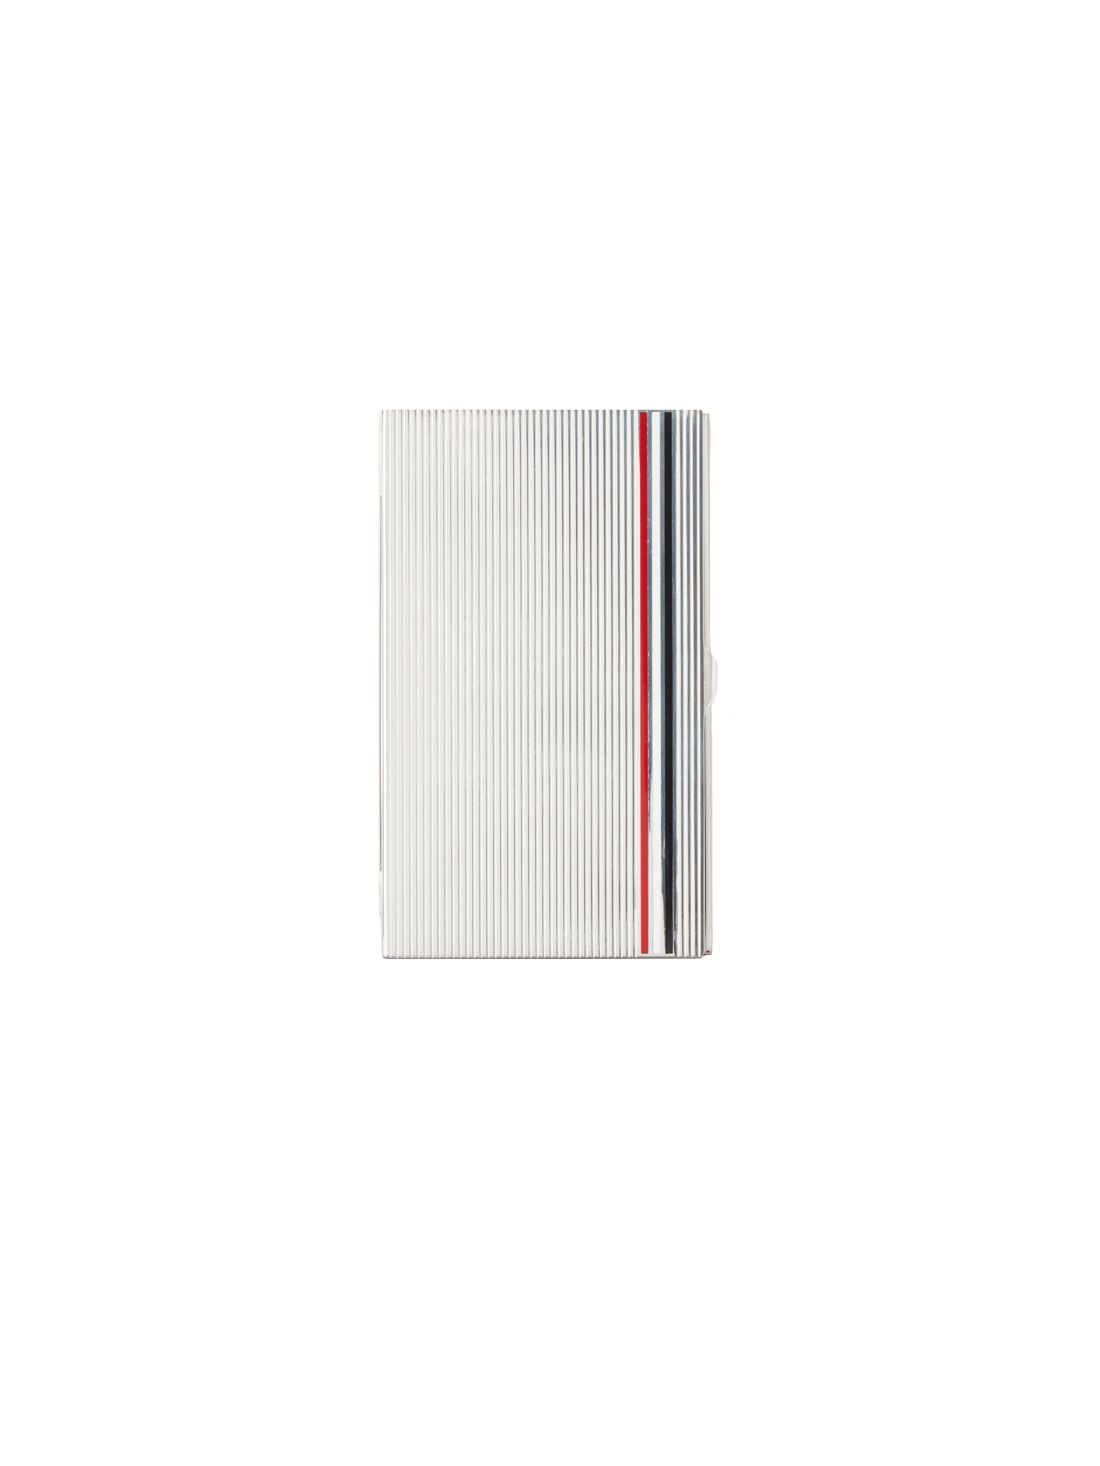 BUSINESS CARD CASE IN STERLING SILVER | Thom Browne | THOM BROWNE ...